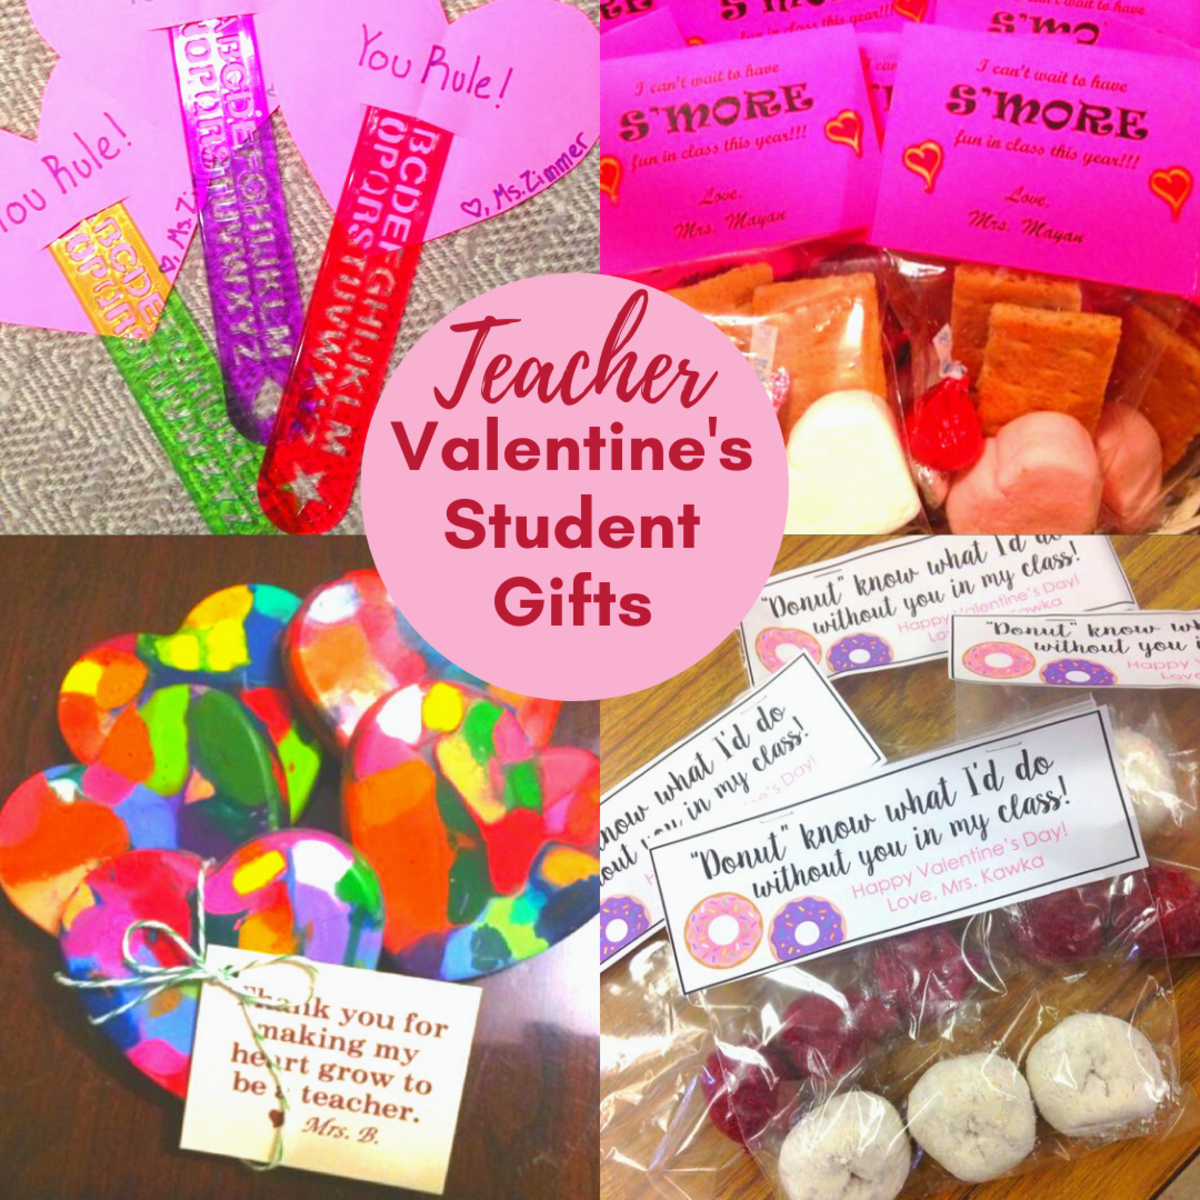 valentines-gifts-from-teachers-to-kids